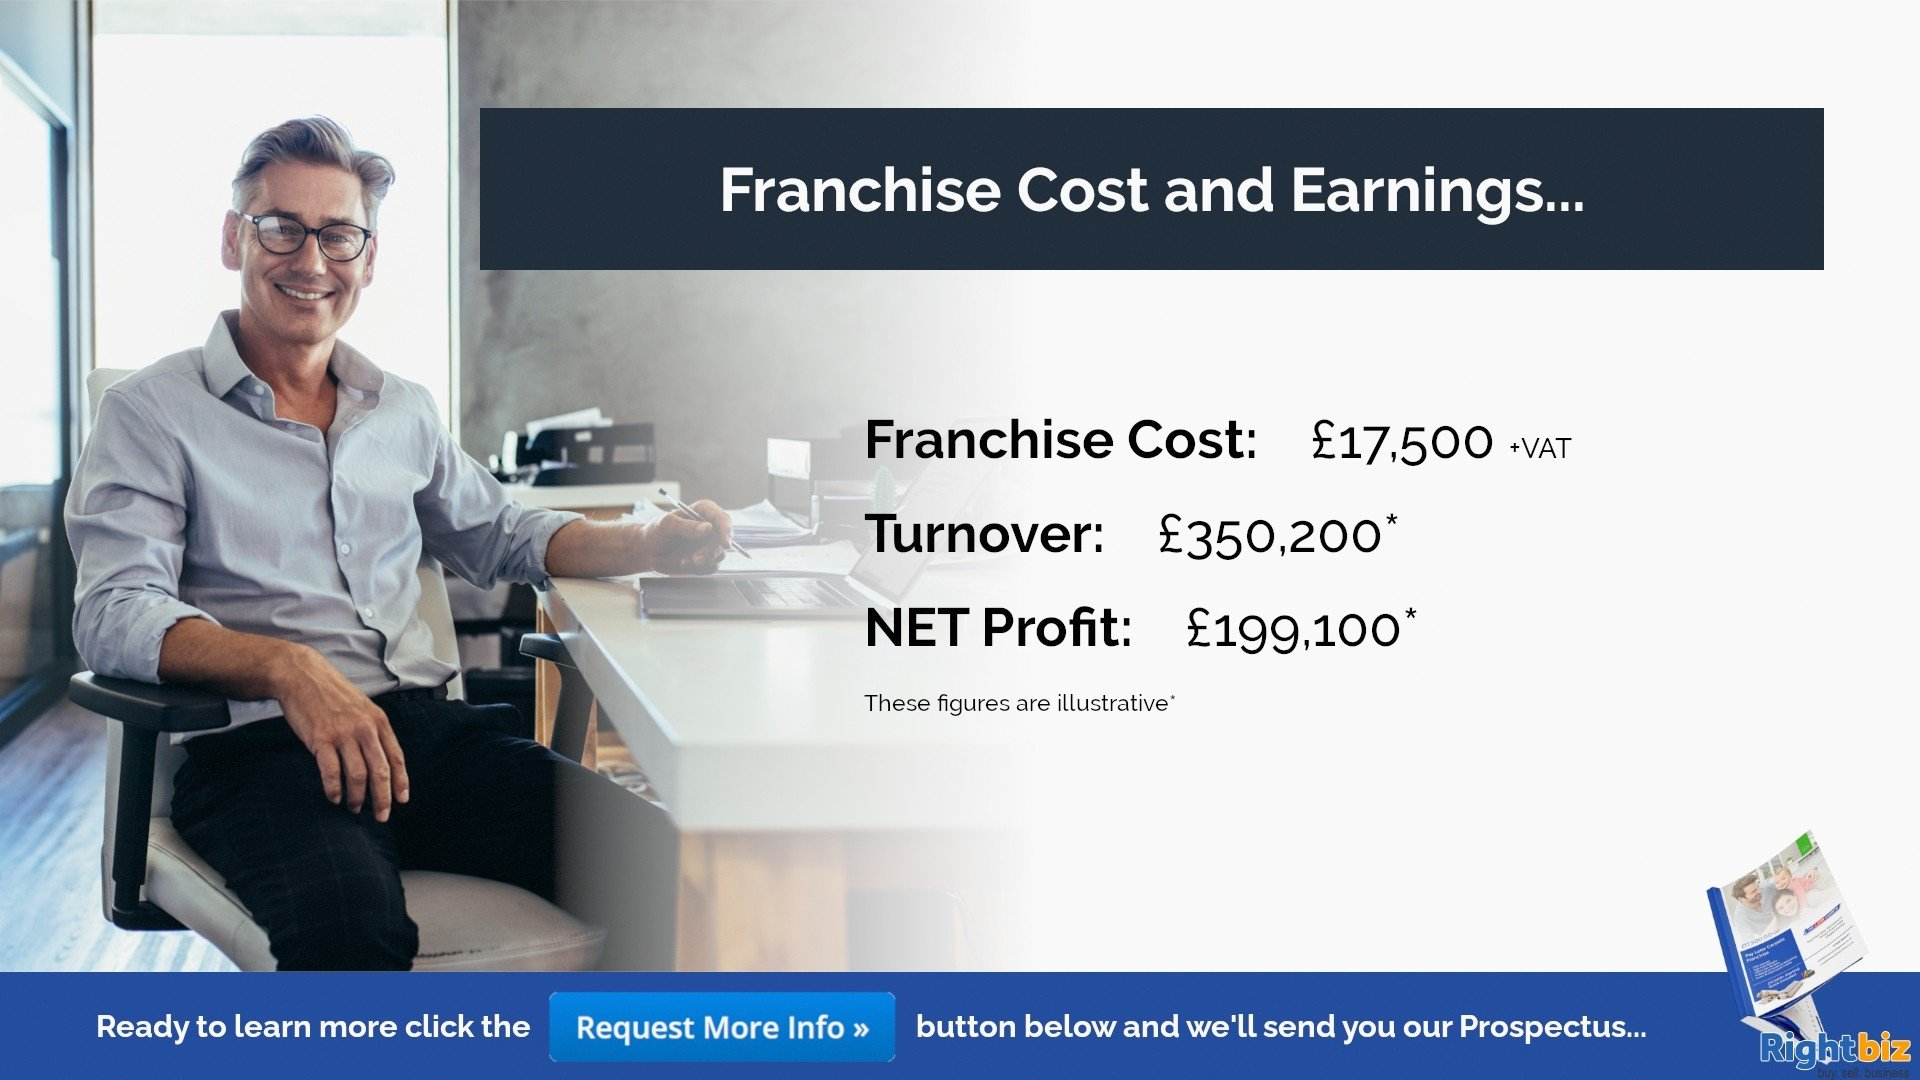 Pay Later Carpets Franchise Derry Our First Franchisee Made £11,000+ Profit in Month One - Image 5